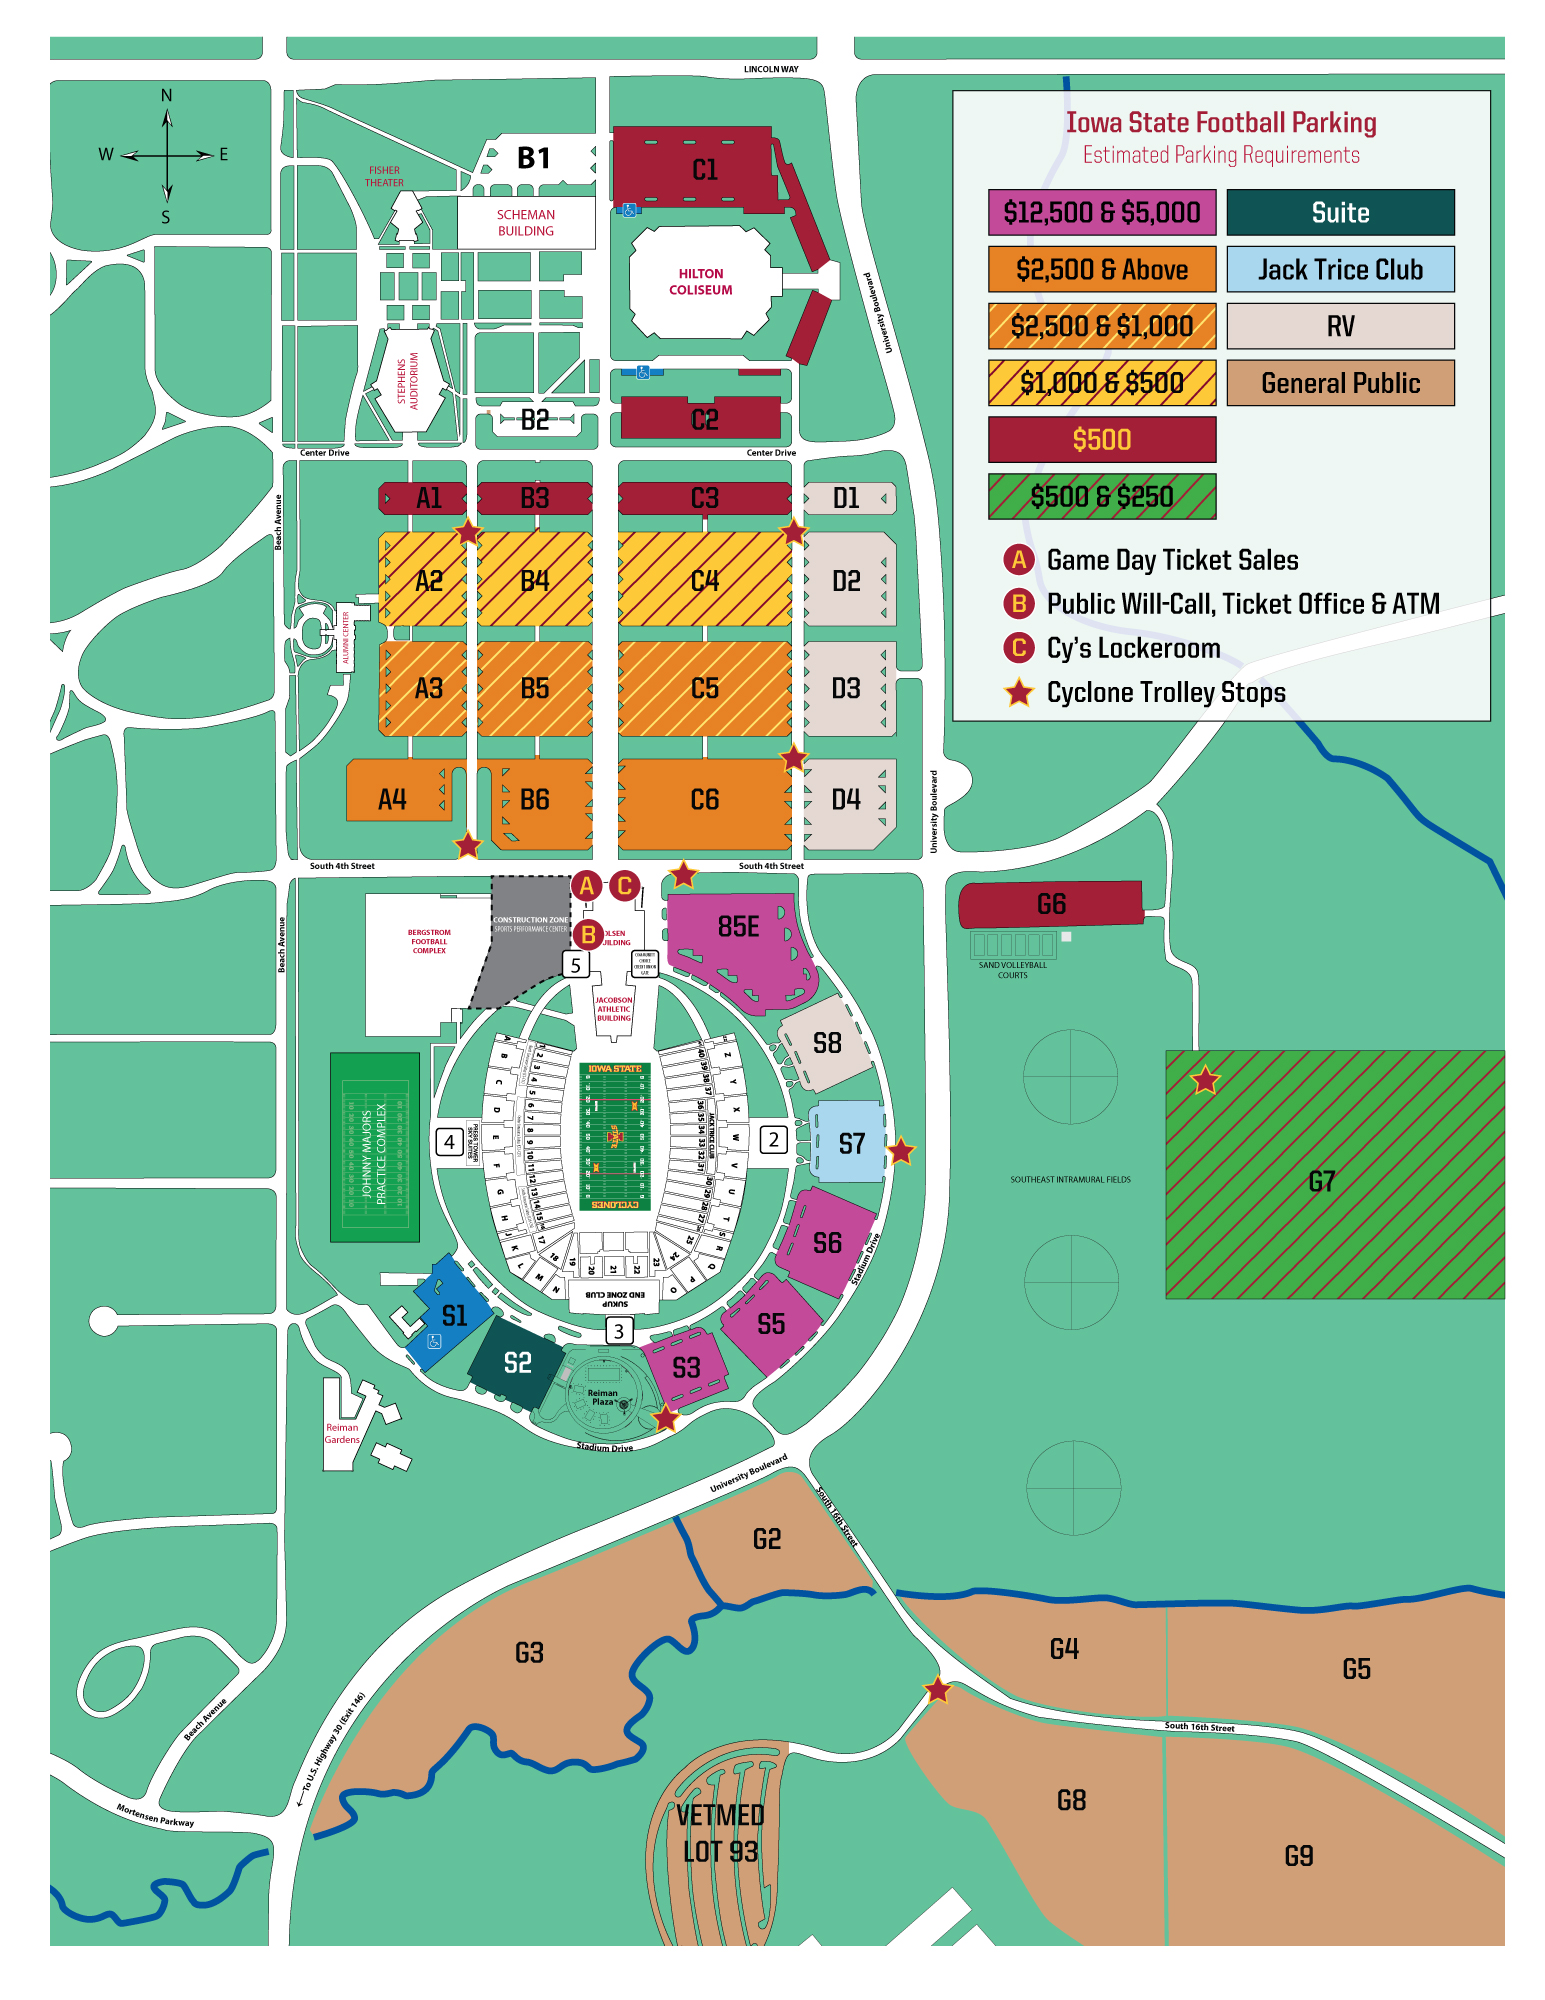 Iowa State University Athletics - Official Athletics Website on richmond parking map, xavier parking map, hofstra parking map, drake parking map, bradley parking map, memphis parking map, miami of ohio parking map, bucknell parking map, school of mines parking map, illinois state history, northern iowa parking map, nebraska parking map, coastal carolina parking map, utah parking map, gonzaga parking map, army parking map, ipfw parking map, uc irvine parking map, semo parking map, mississippi parking map,